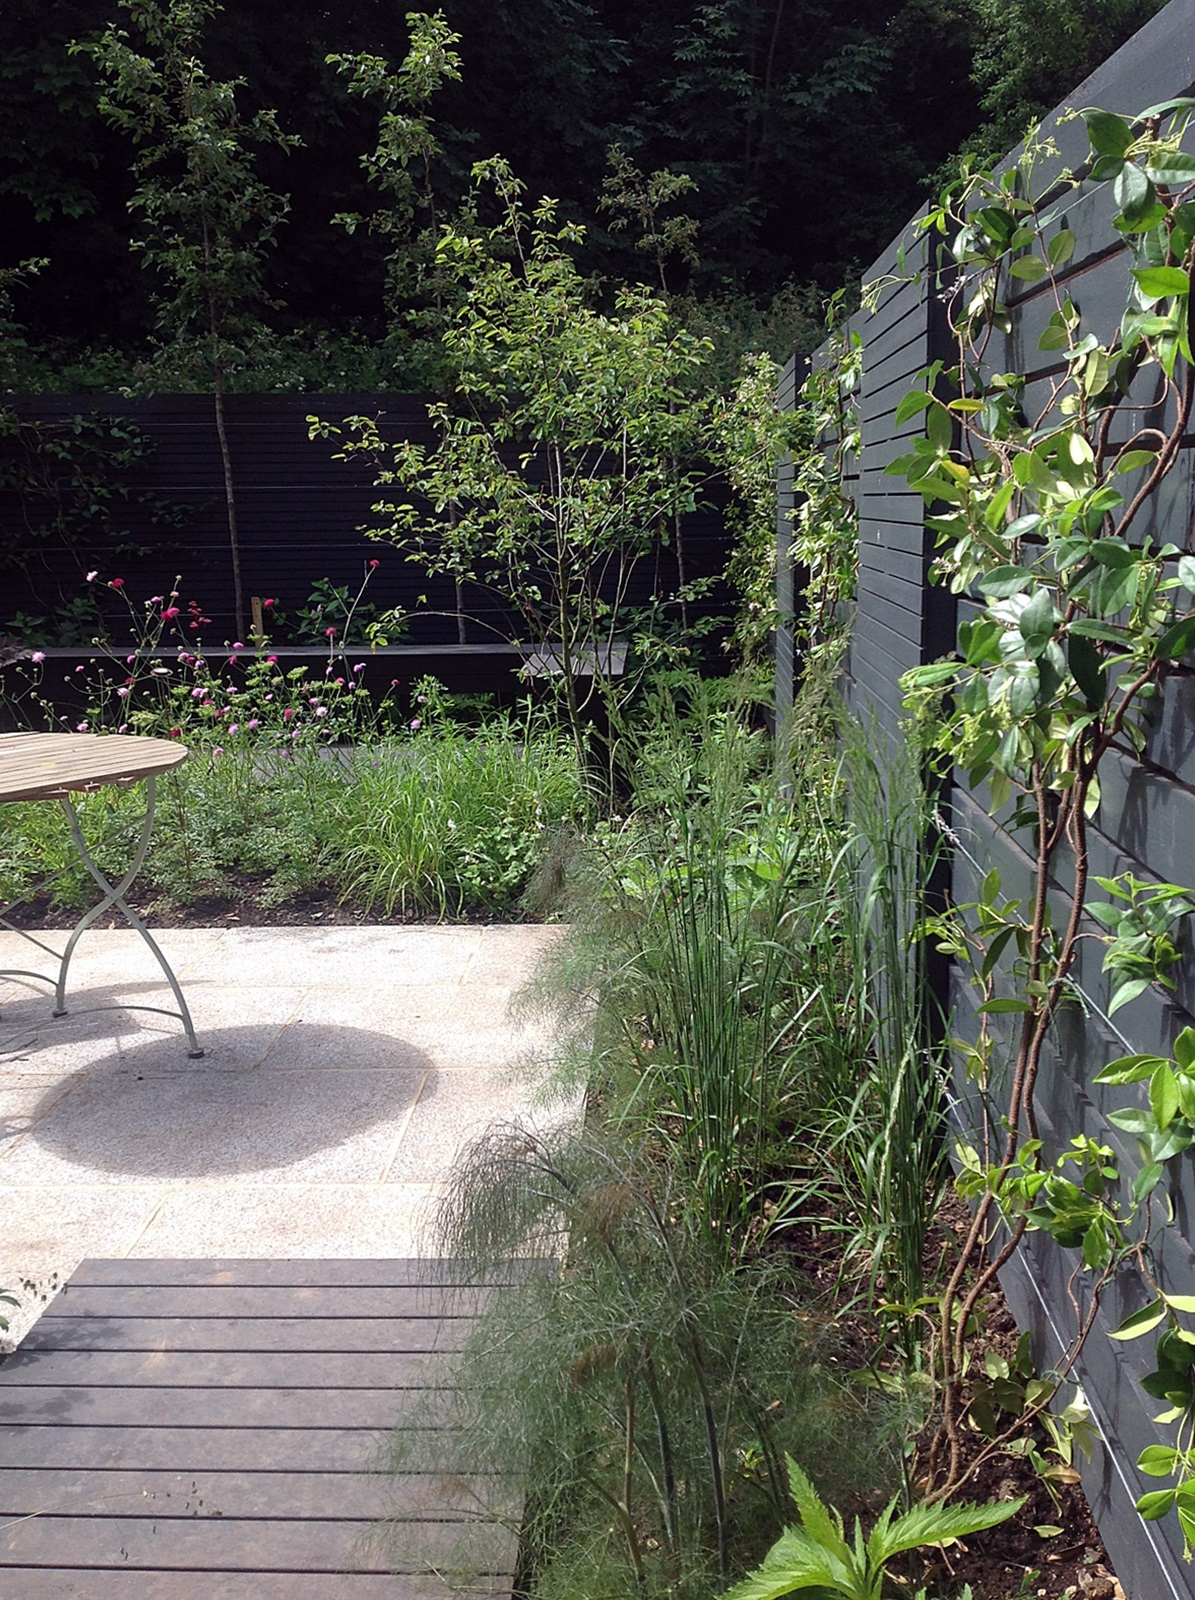 London small garden design peckham dulwich clapham battersea designer london